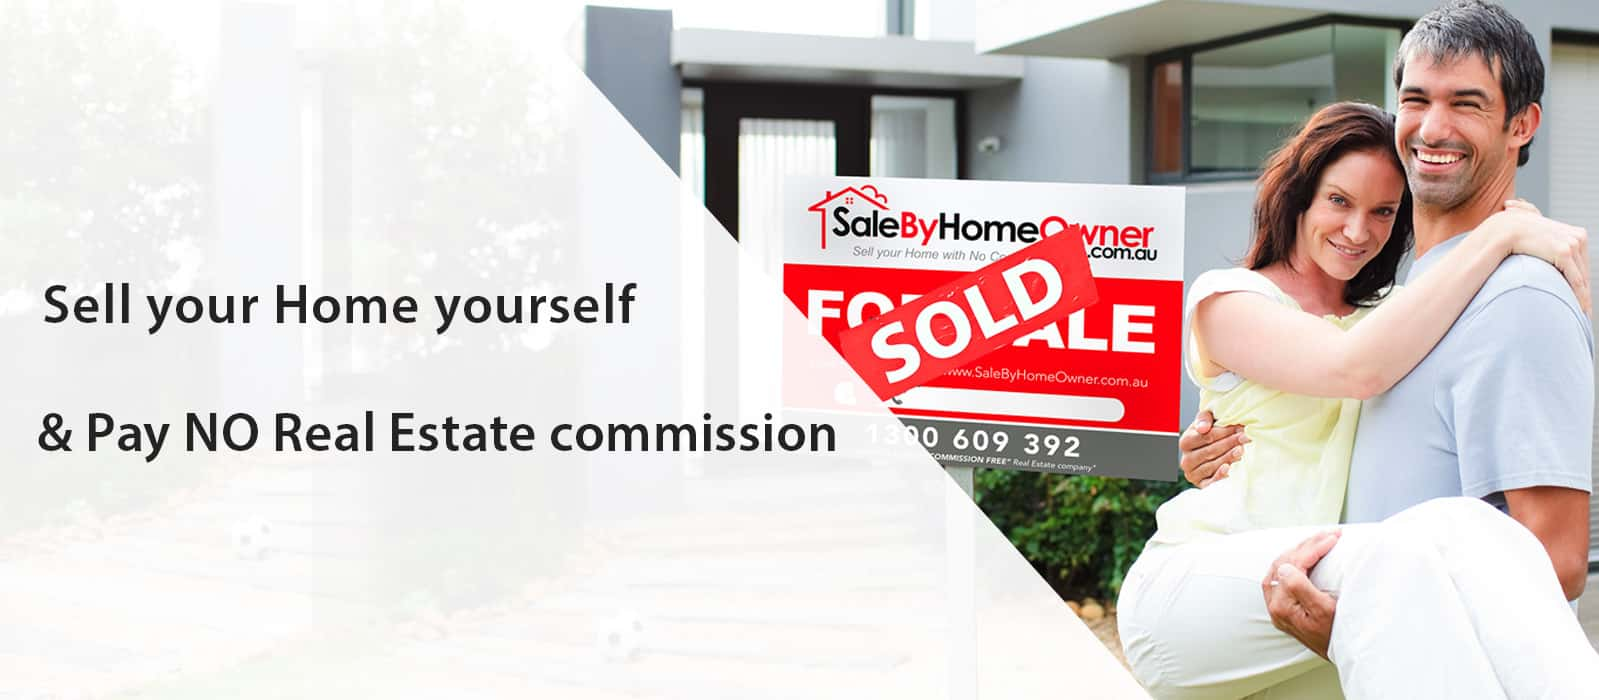 6 steps to Selling your Home Privately